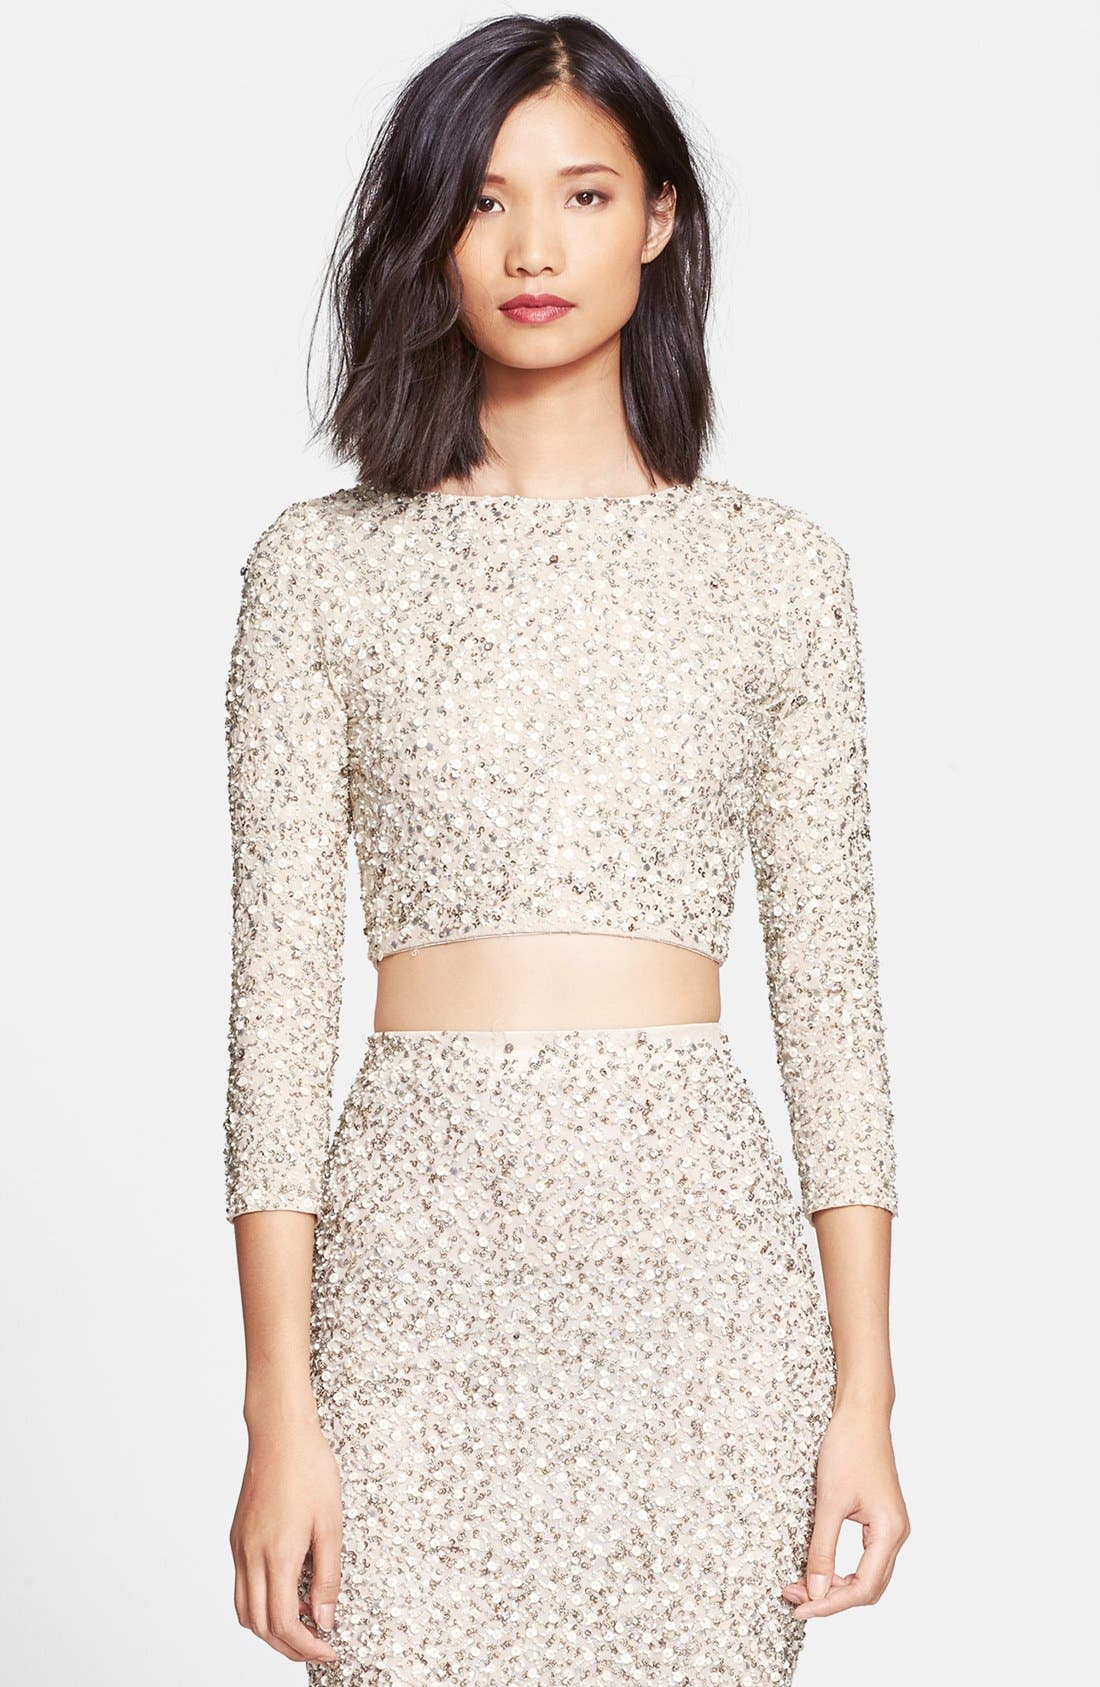 'Lacey' Embellished Crop Top,                             Main thumbnail 1, color,                             Cream/ Silver